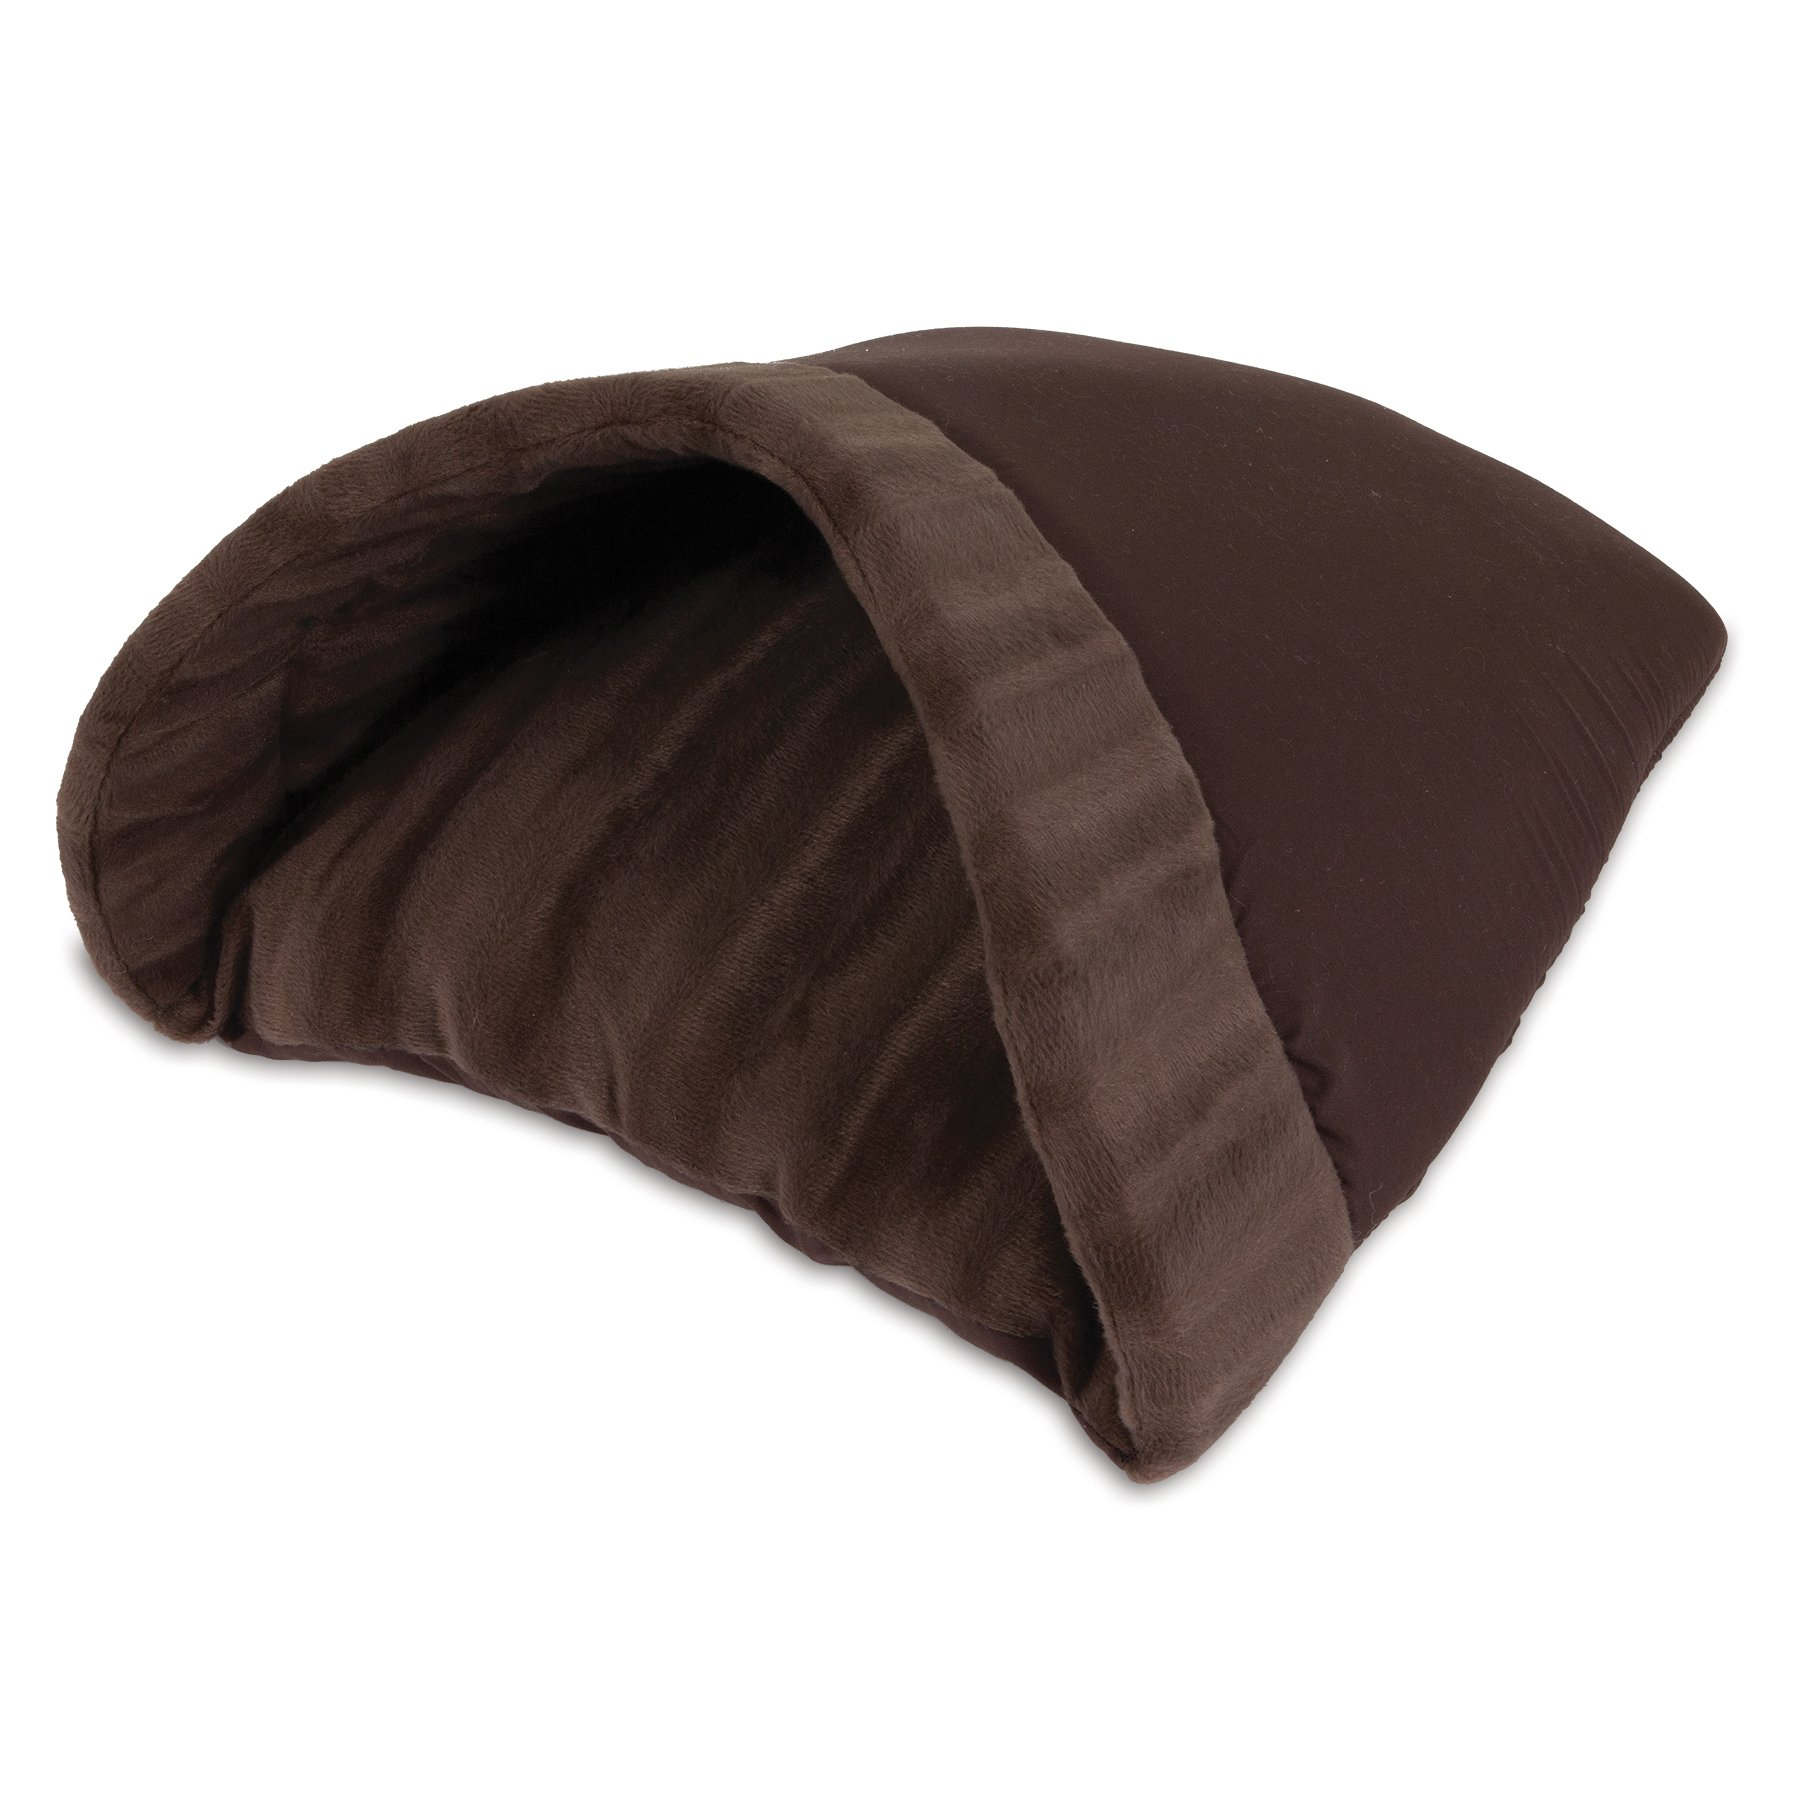 Aspen Pet Kitty Cave, 16-Inch by 19-Inch, Chocolate Brown by Petmate